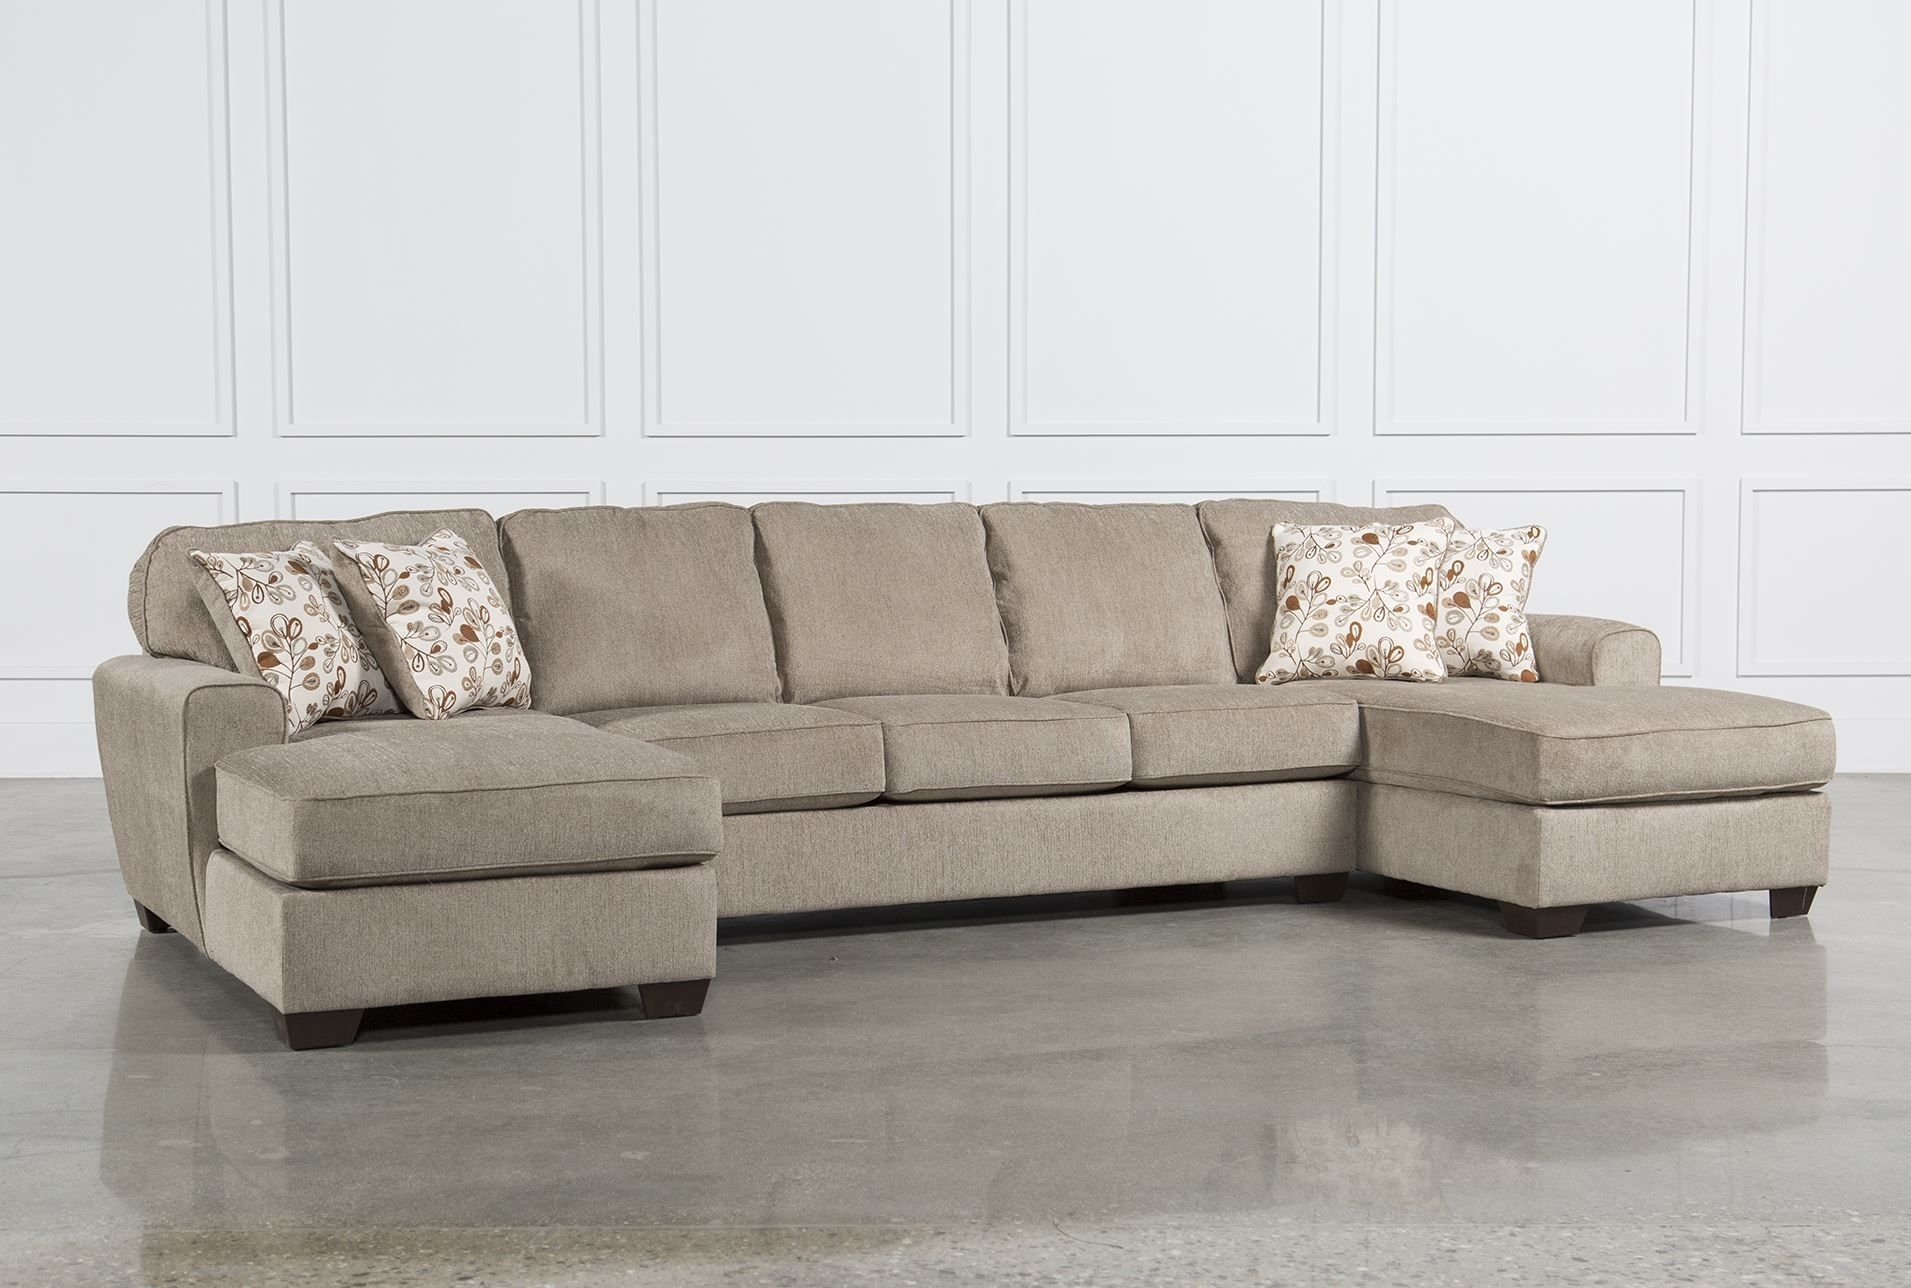 Patola Park 3 Piece Sectional W/2 Corner Chaises | Mountain Modern For Malbry Point 3 Piece Sectionals With Raf Chaise (View 6 of 25)